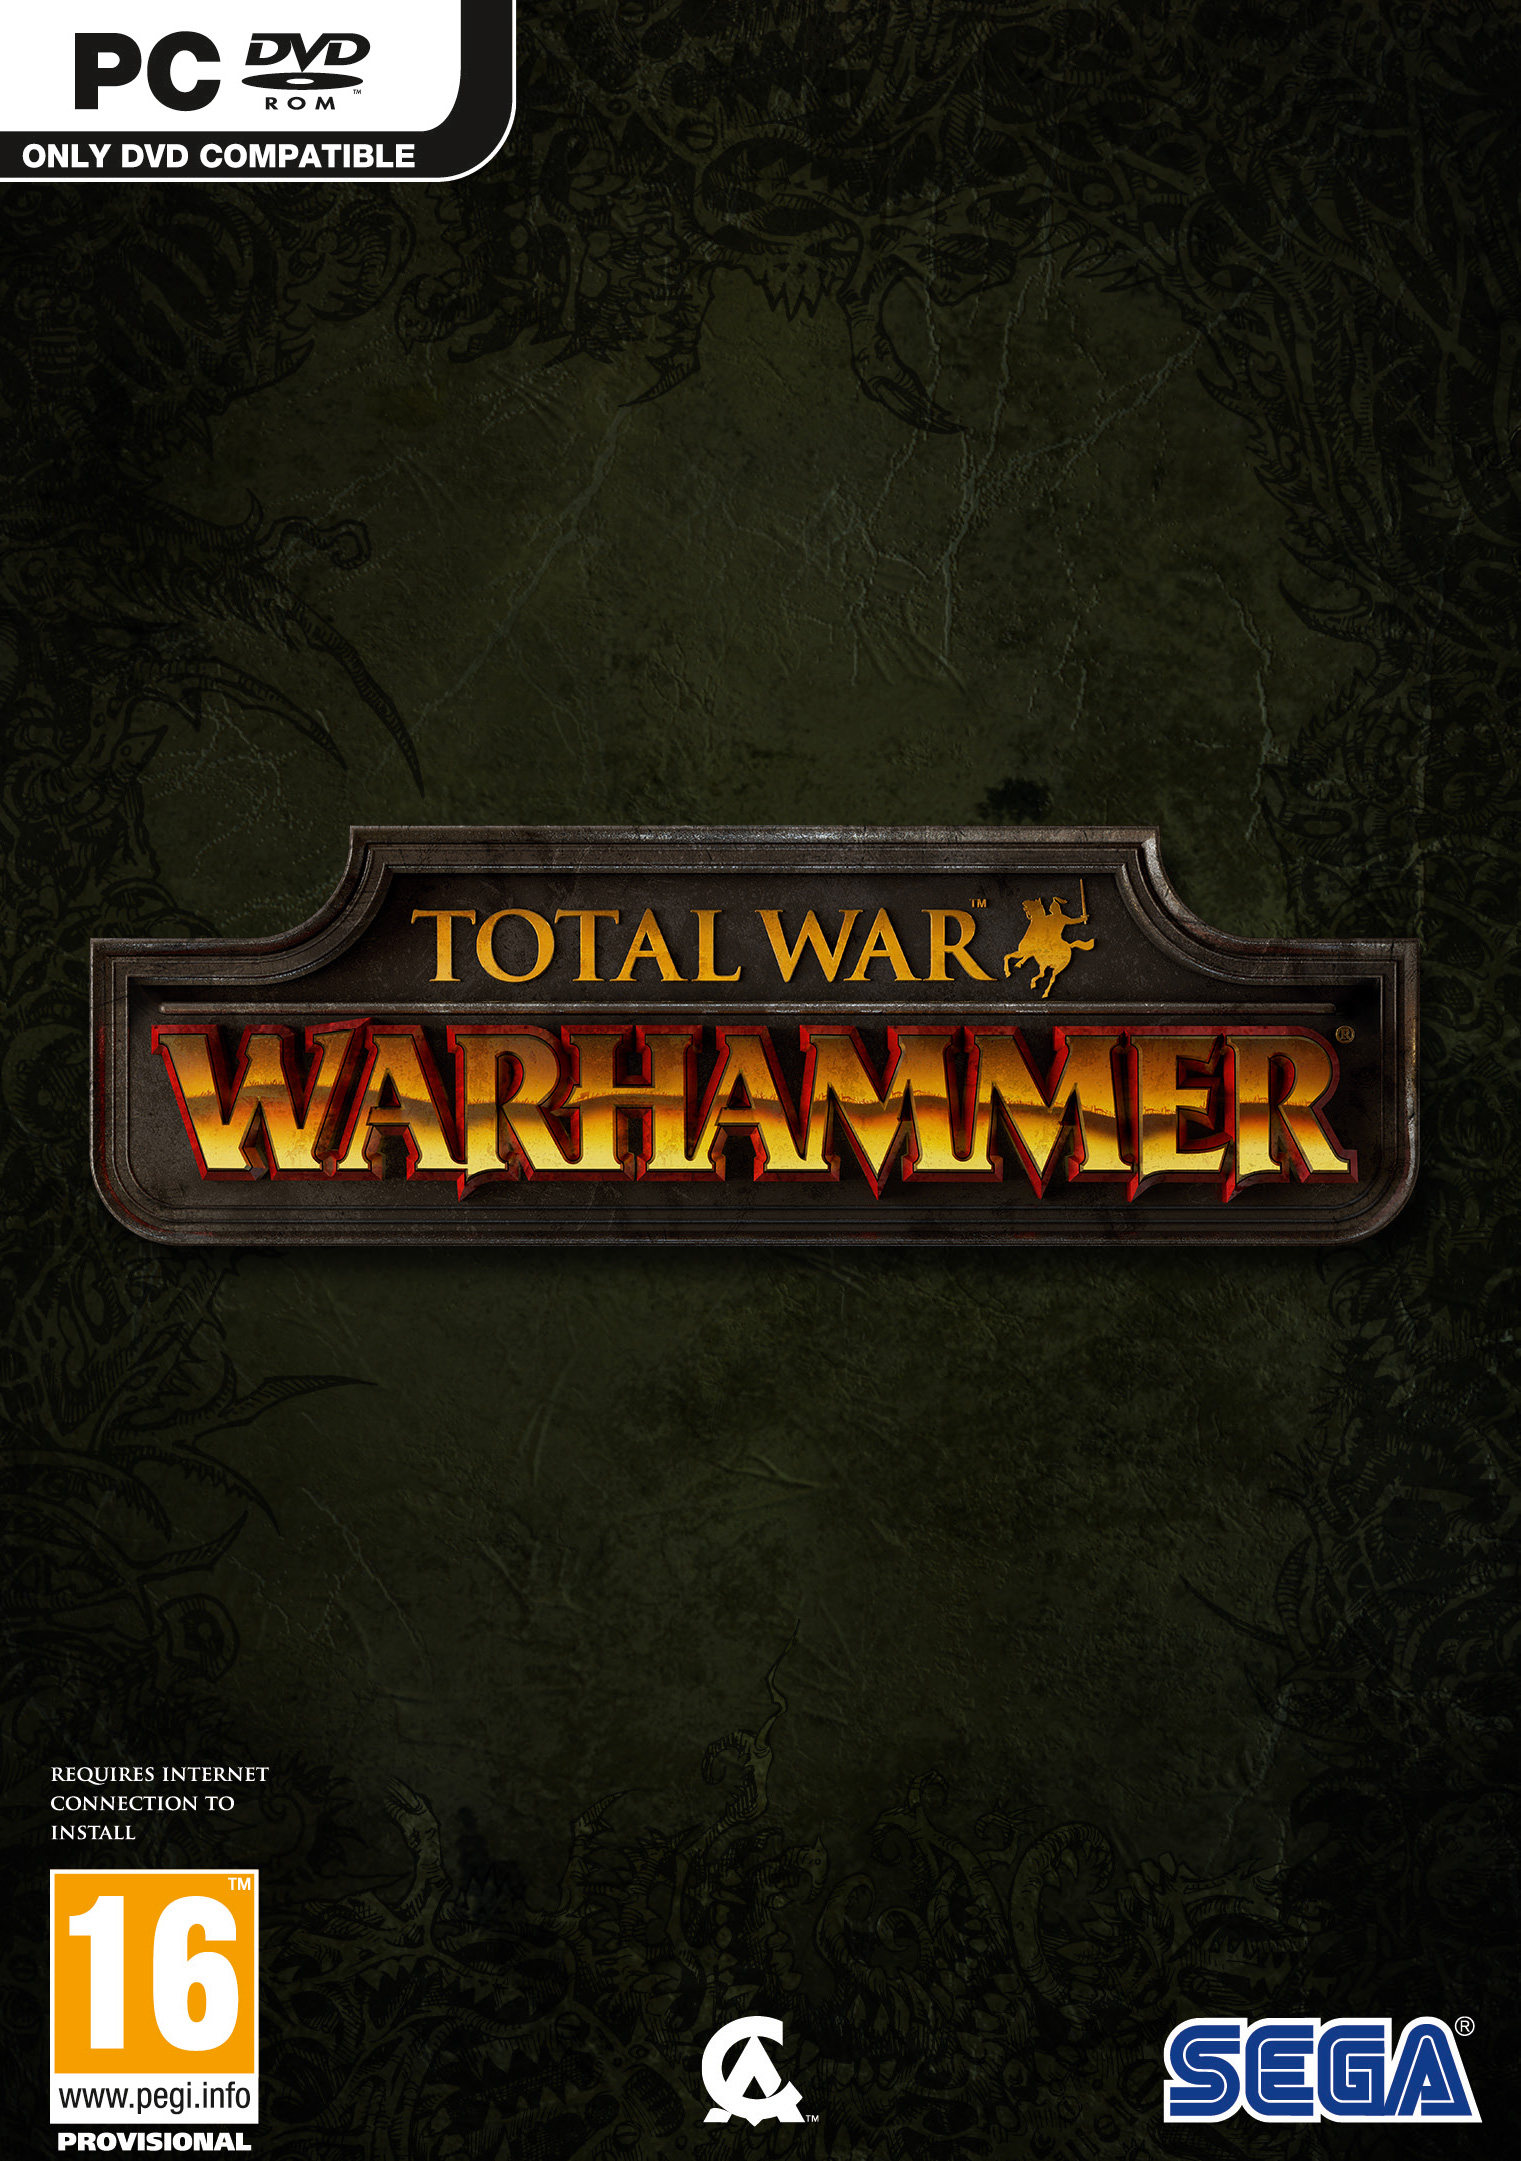 Box art - Total War: Warhammer